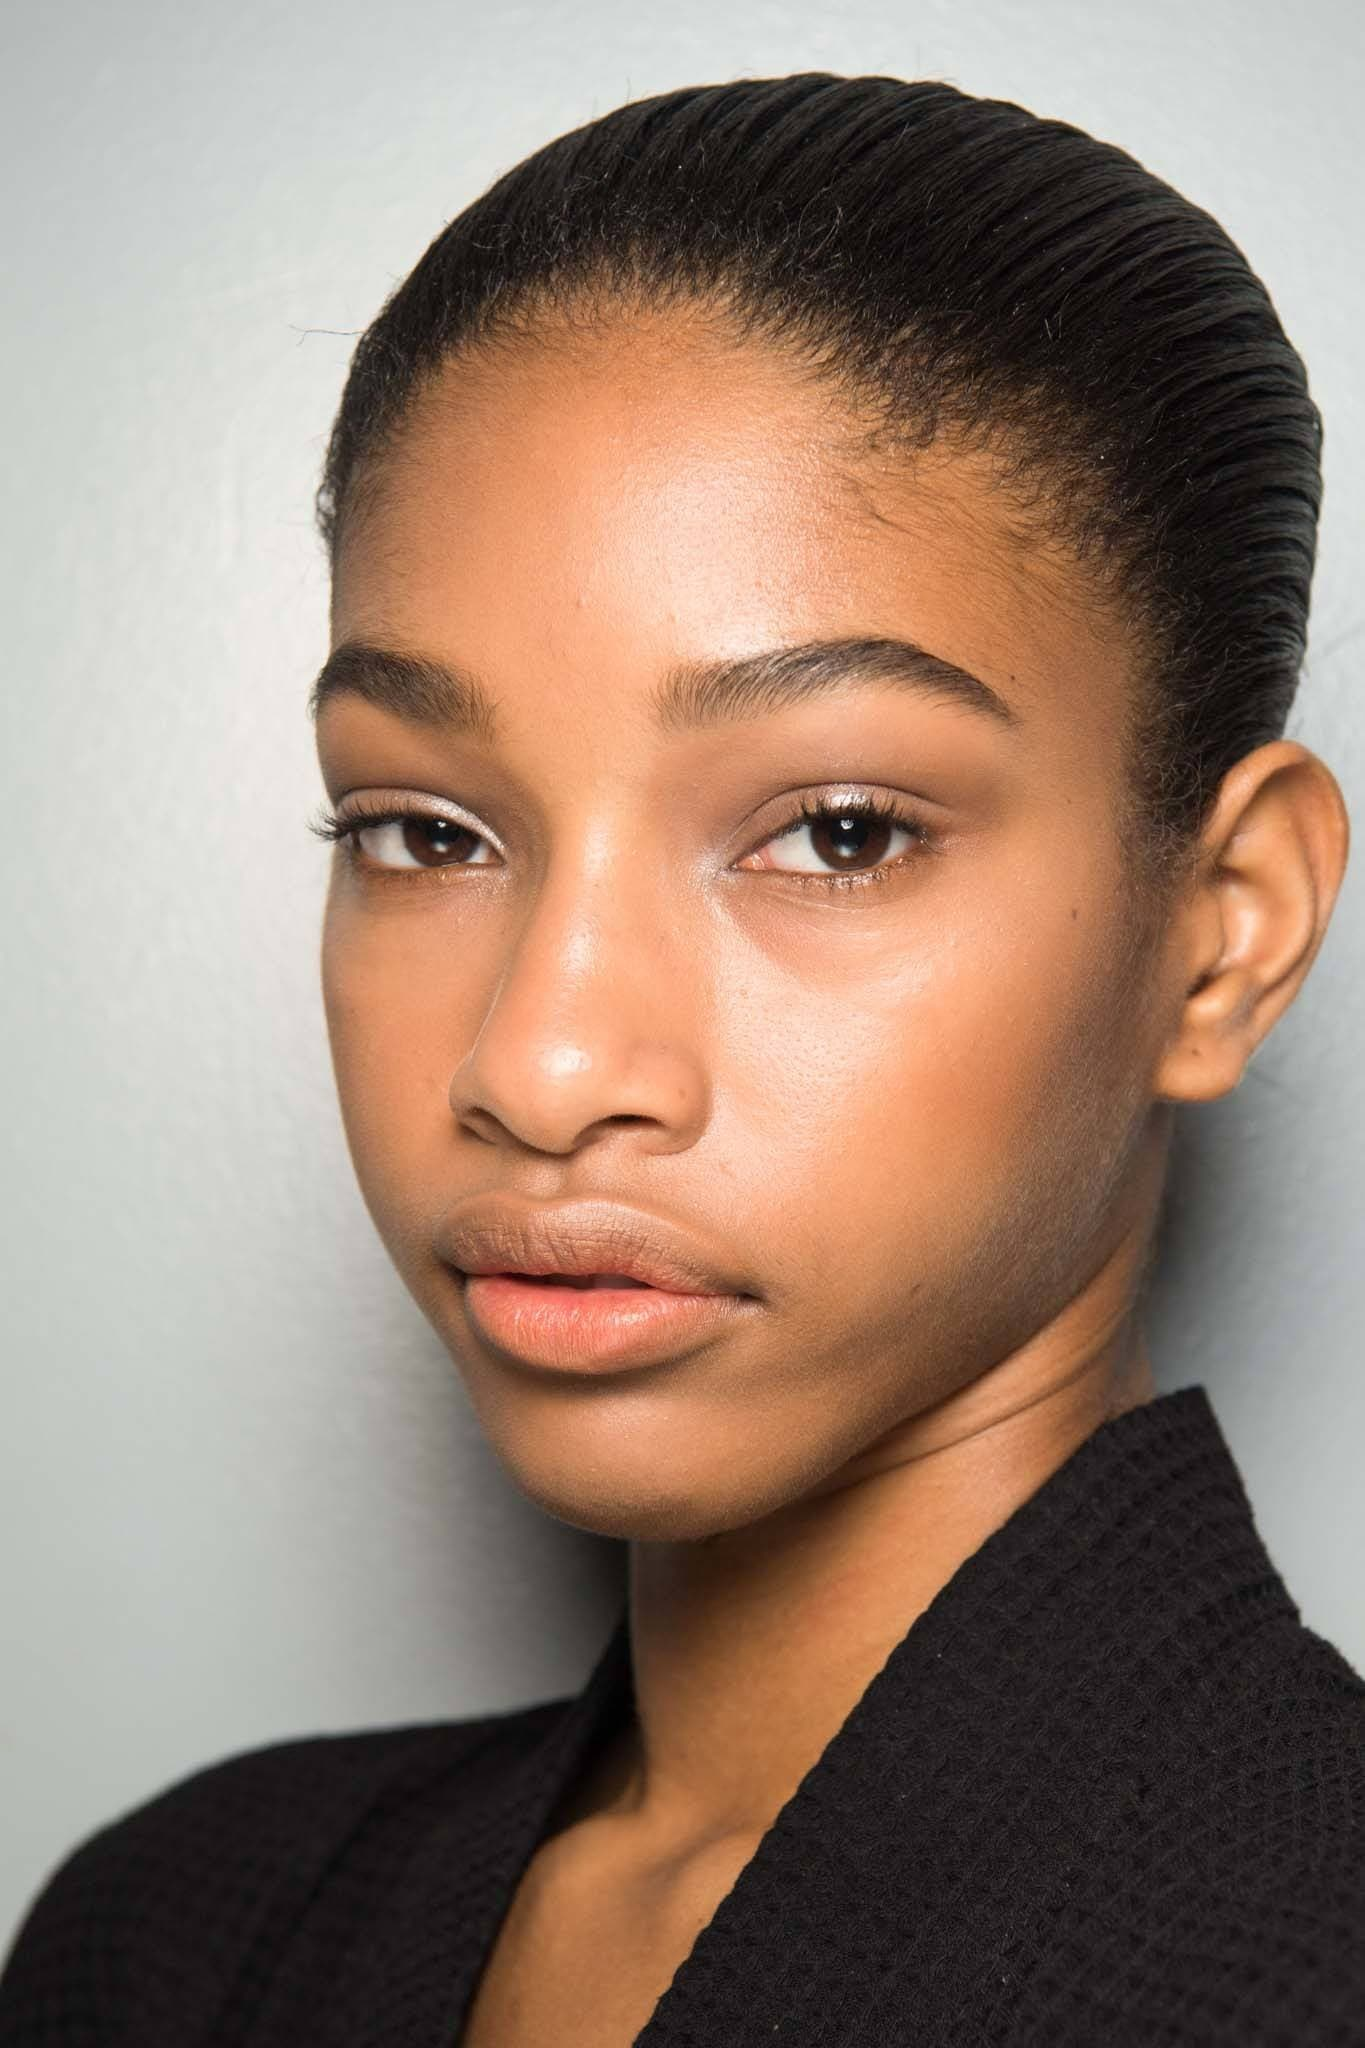 Short black hair: A black model with wet-look short hair from the Alexander Wang AW18